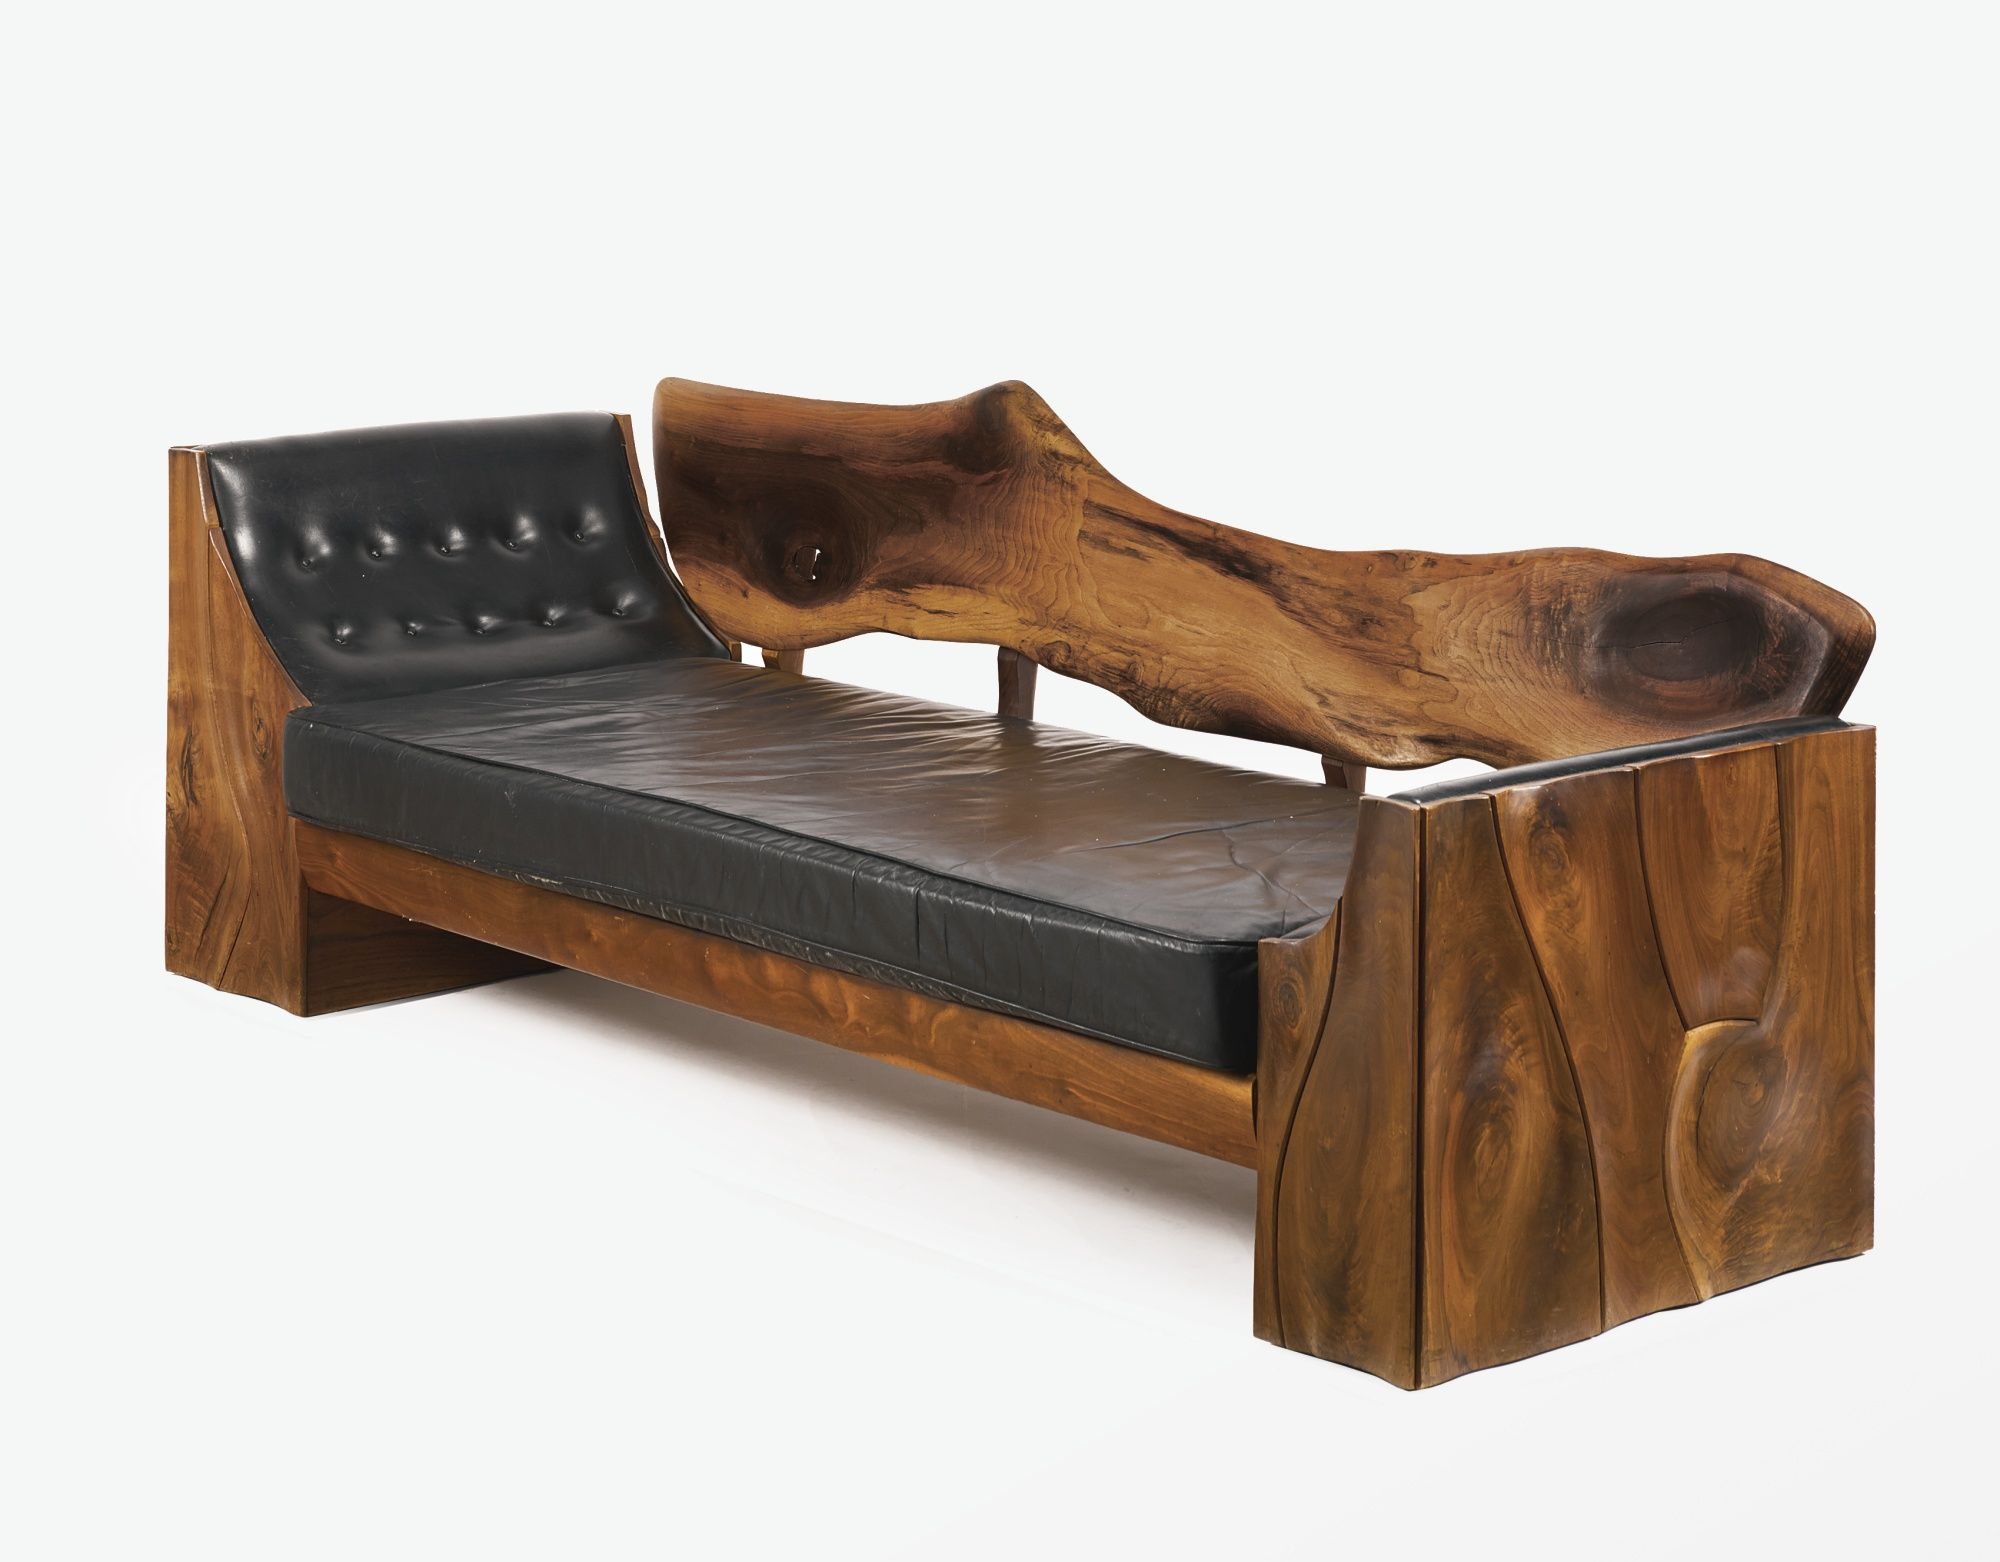 Philip Powell walnut sofa | natural wood | Pinterest | Upholstery ...